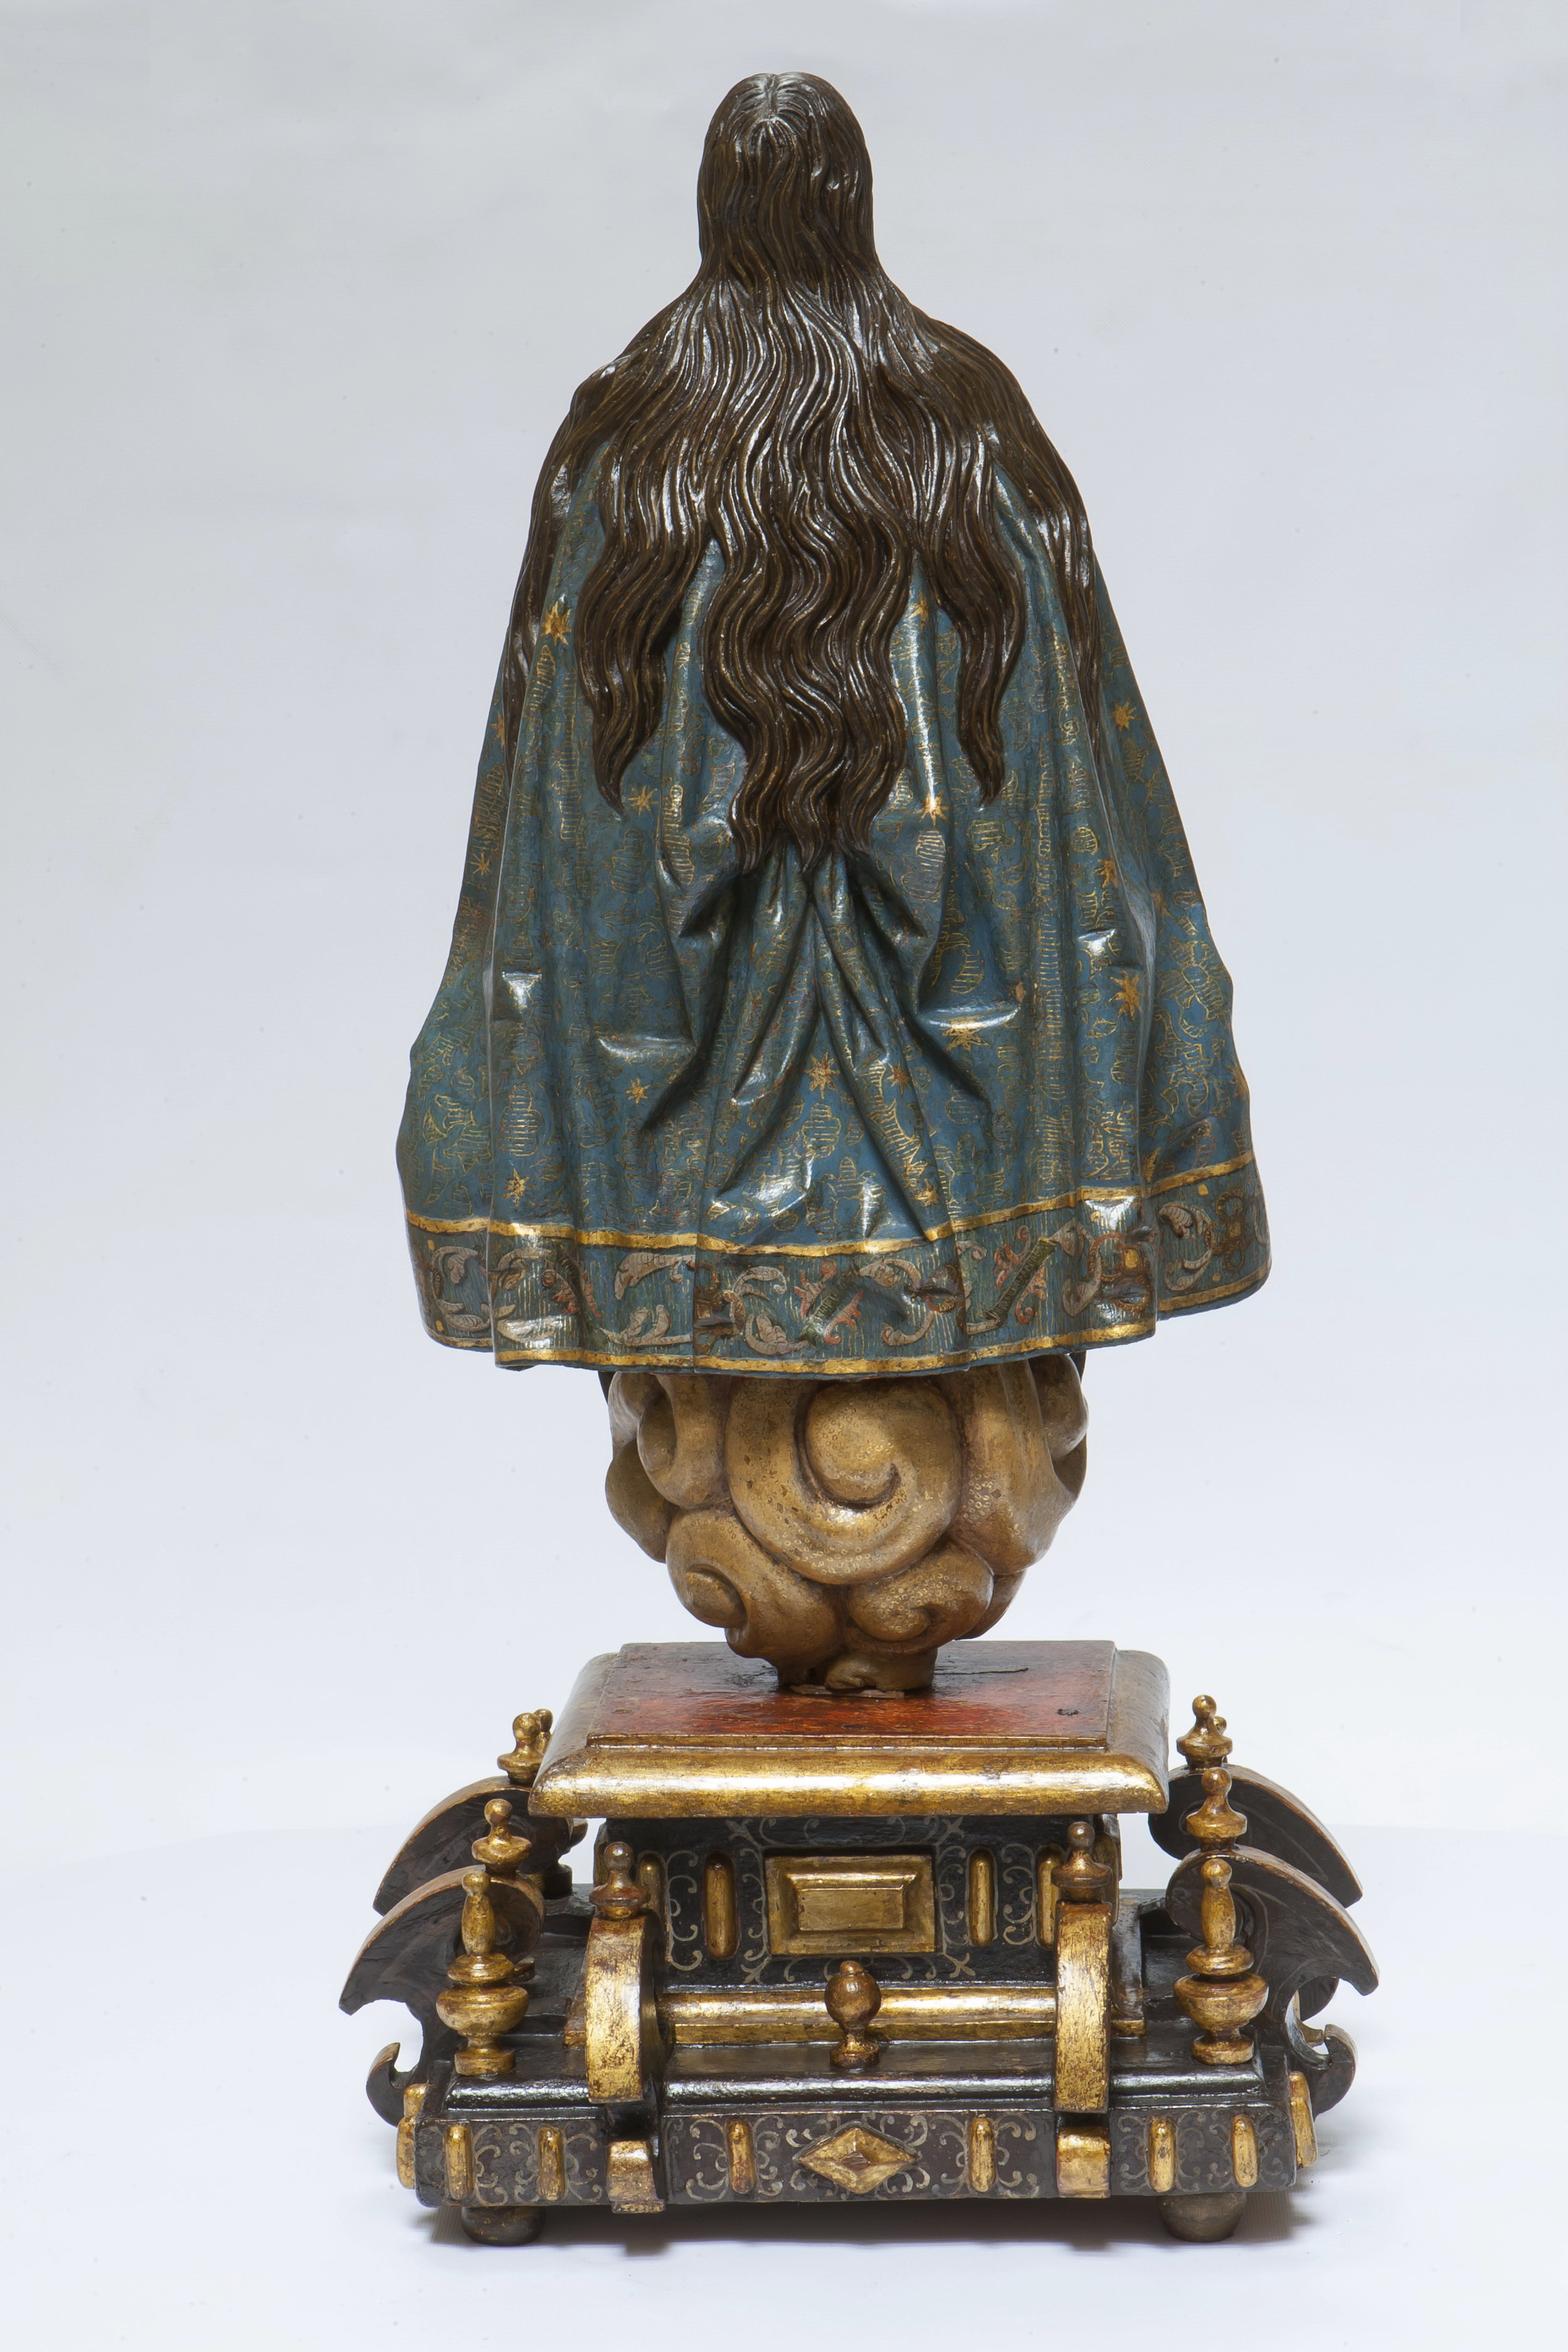 Gregorio Fernández, Virgin of the Immaculate Conception - View from the Reverse 2